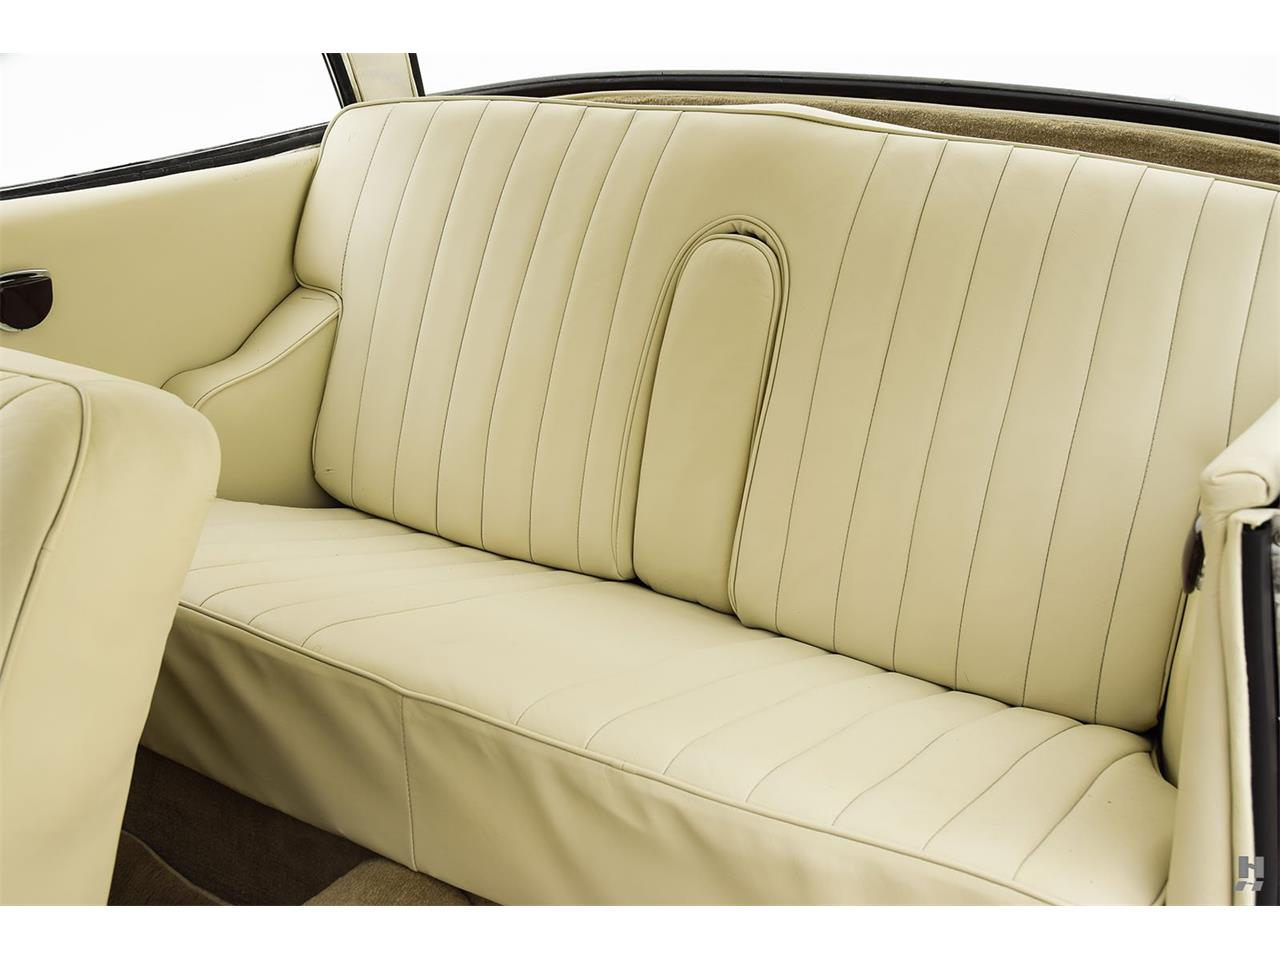 Large Picture of 1961 Alvis TD21 - $49,500.00 Offered by Hyman Ltd. Classic Cars - LEAR